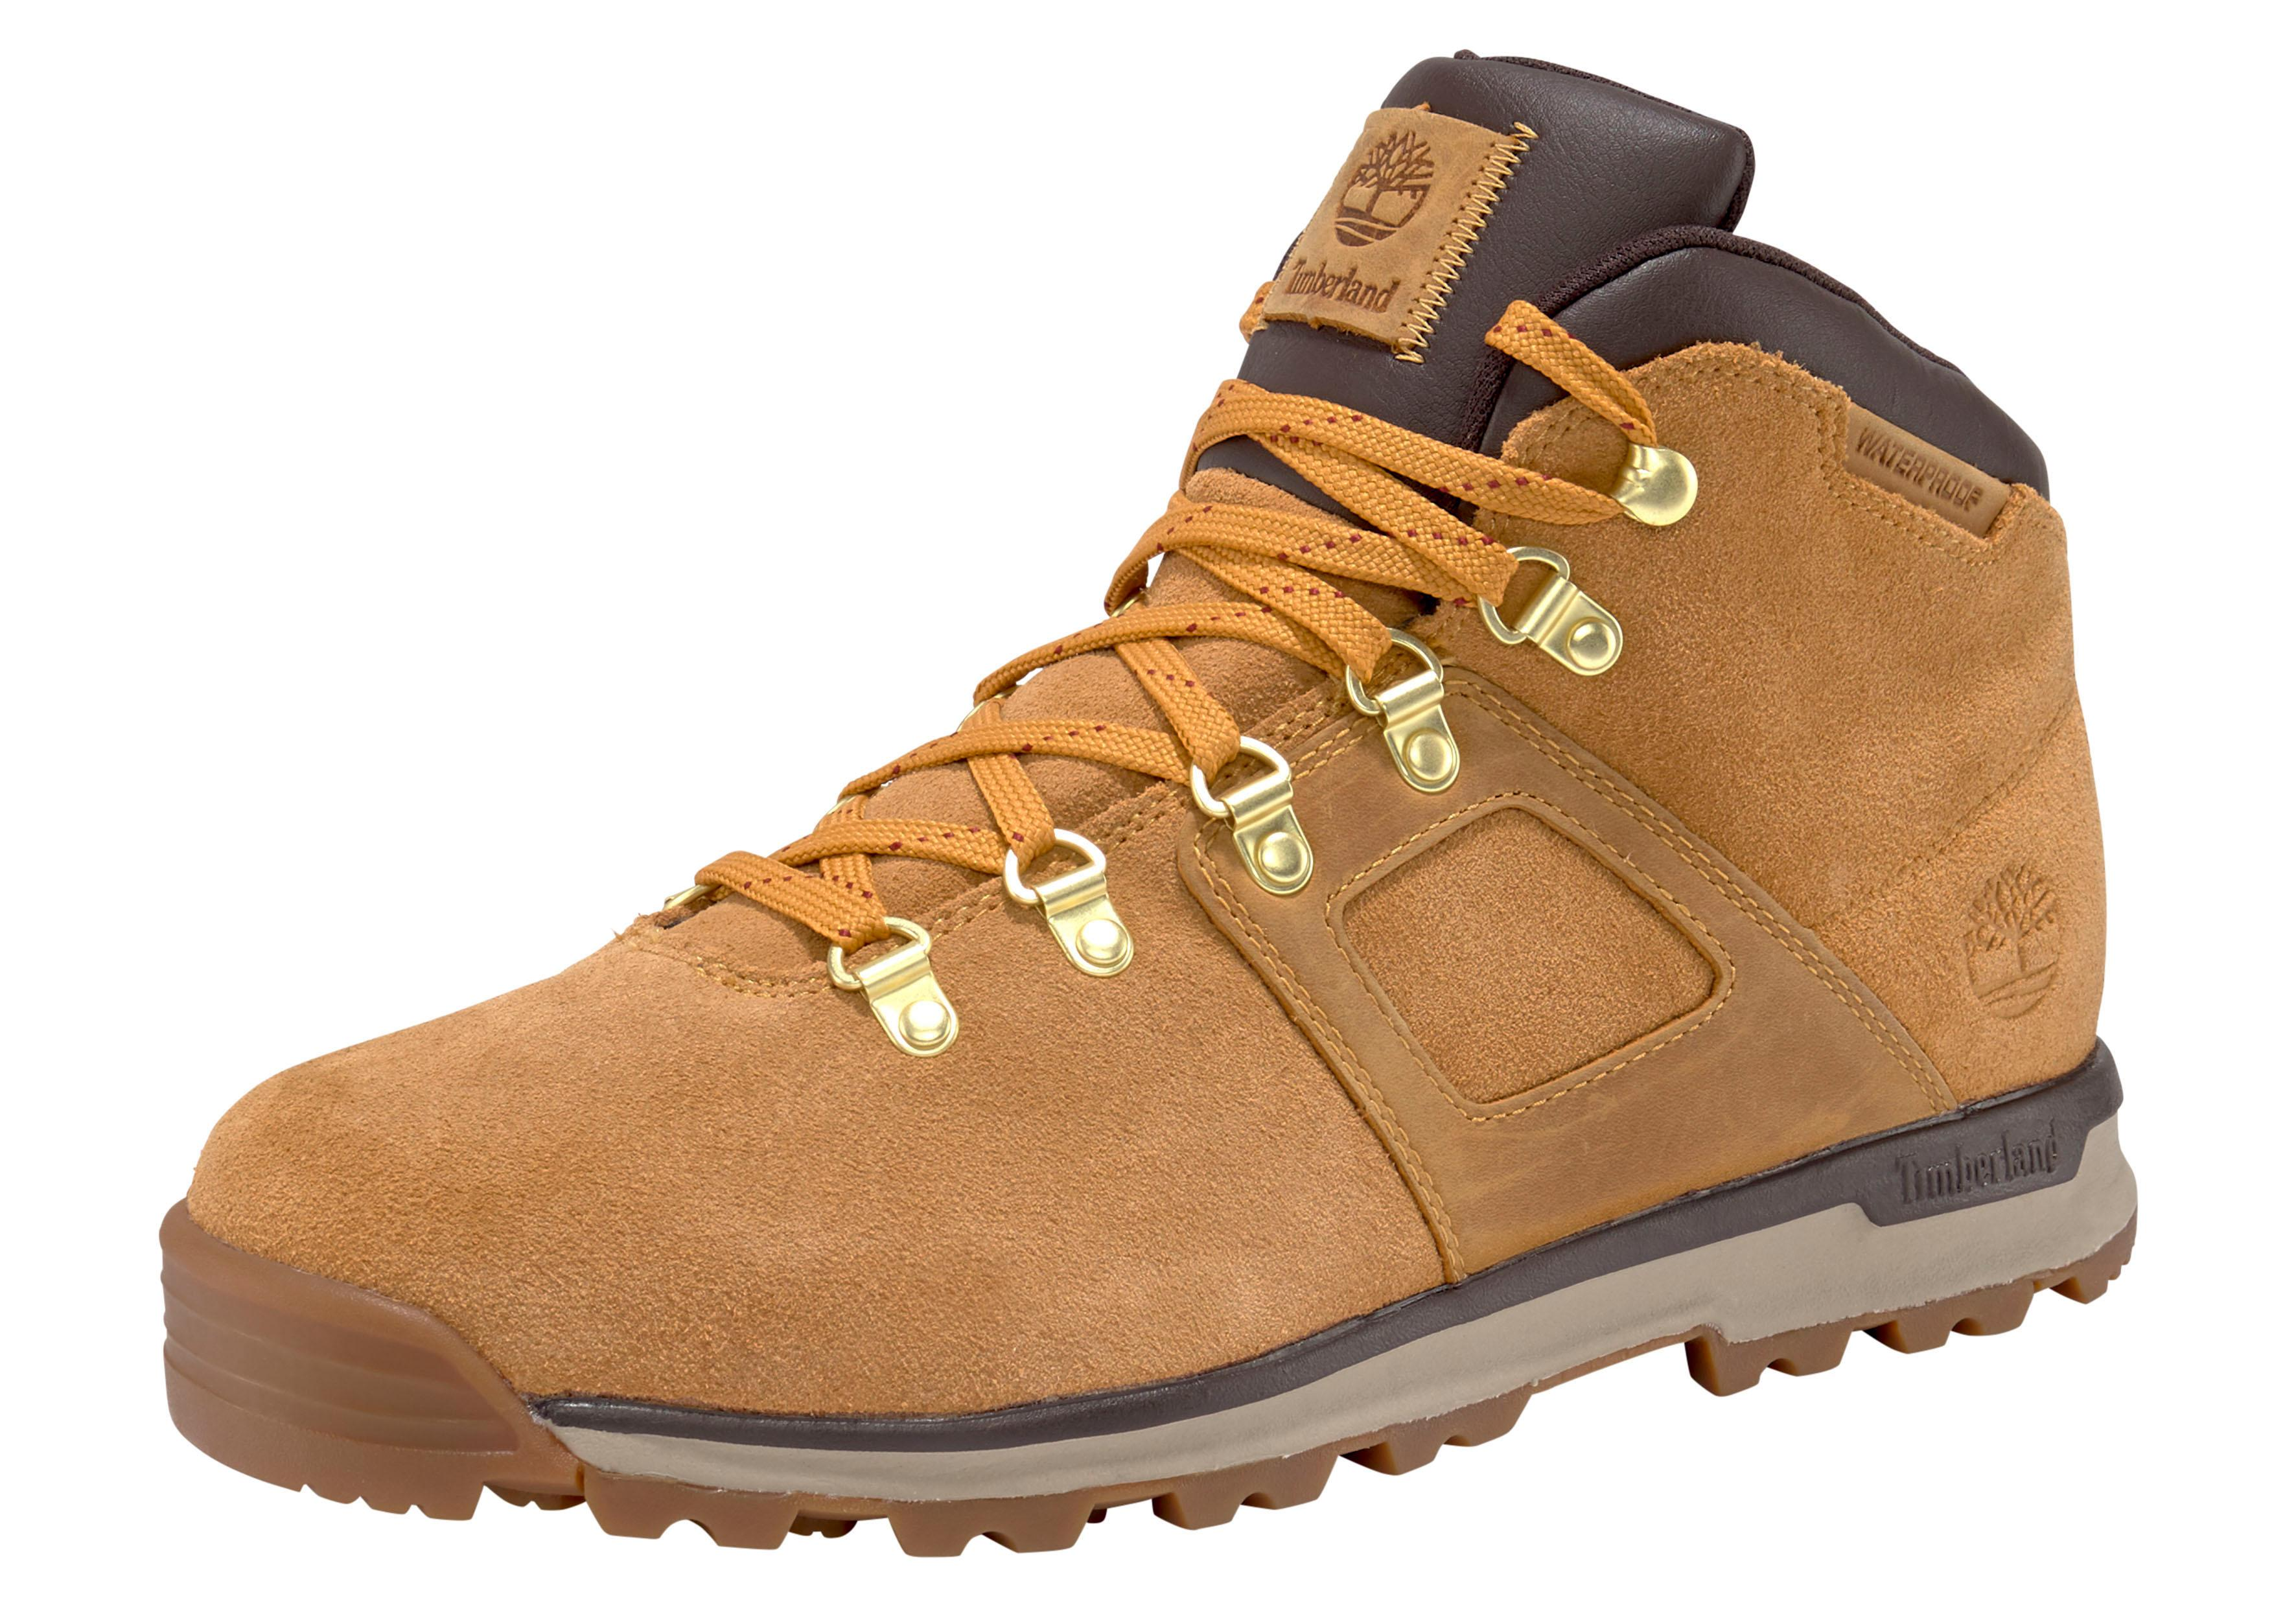 Timberland Schnürboots GT Scramble Mid Leather W | Schuhe > Boots > Schnürboots | Timberland